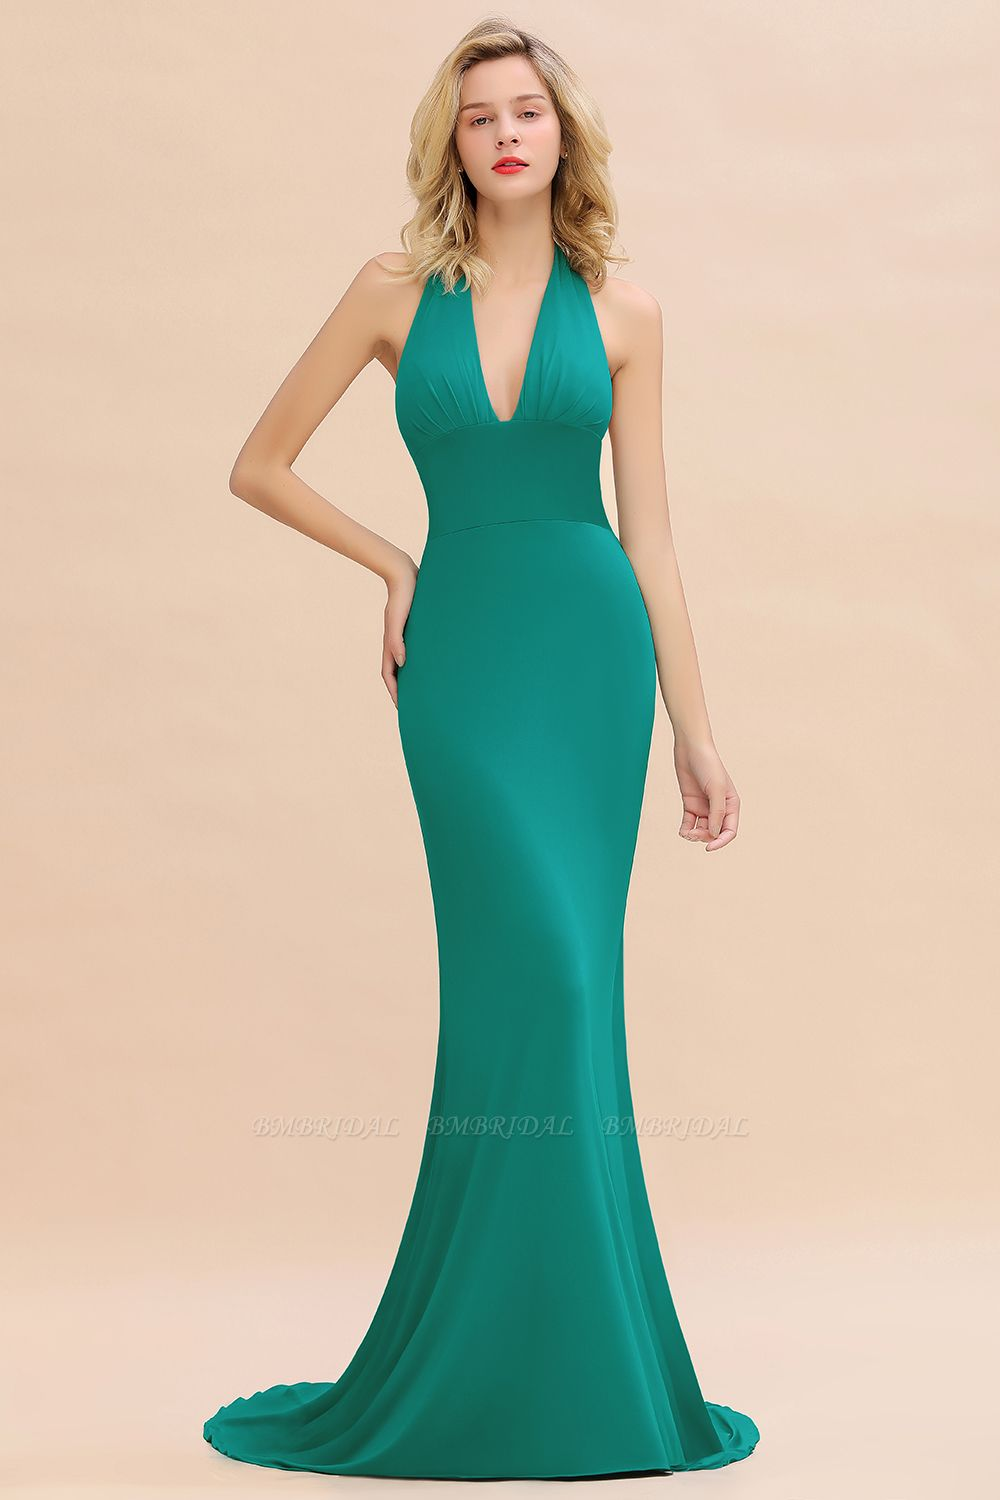 BMbridal Mermaid Halter V-Neck Dark Green Chiffon Bridesmaid Dress with Open Back